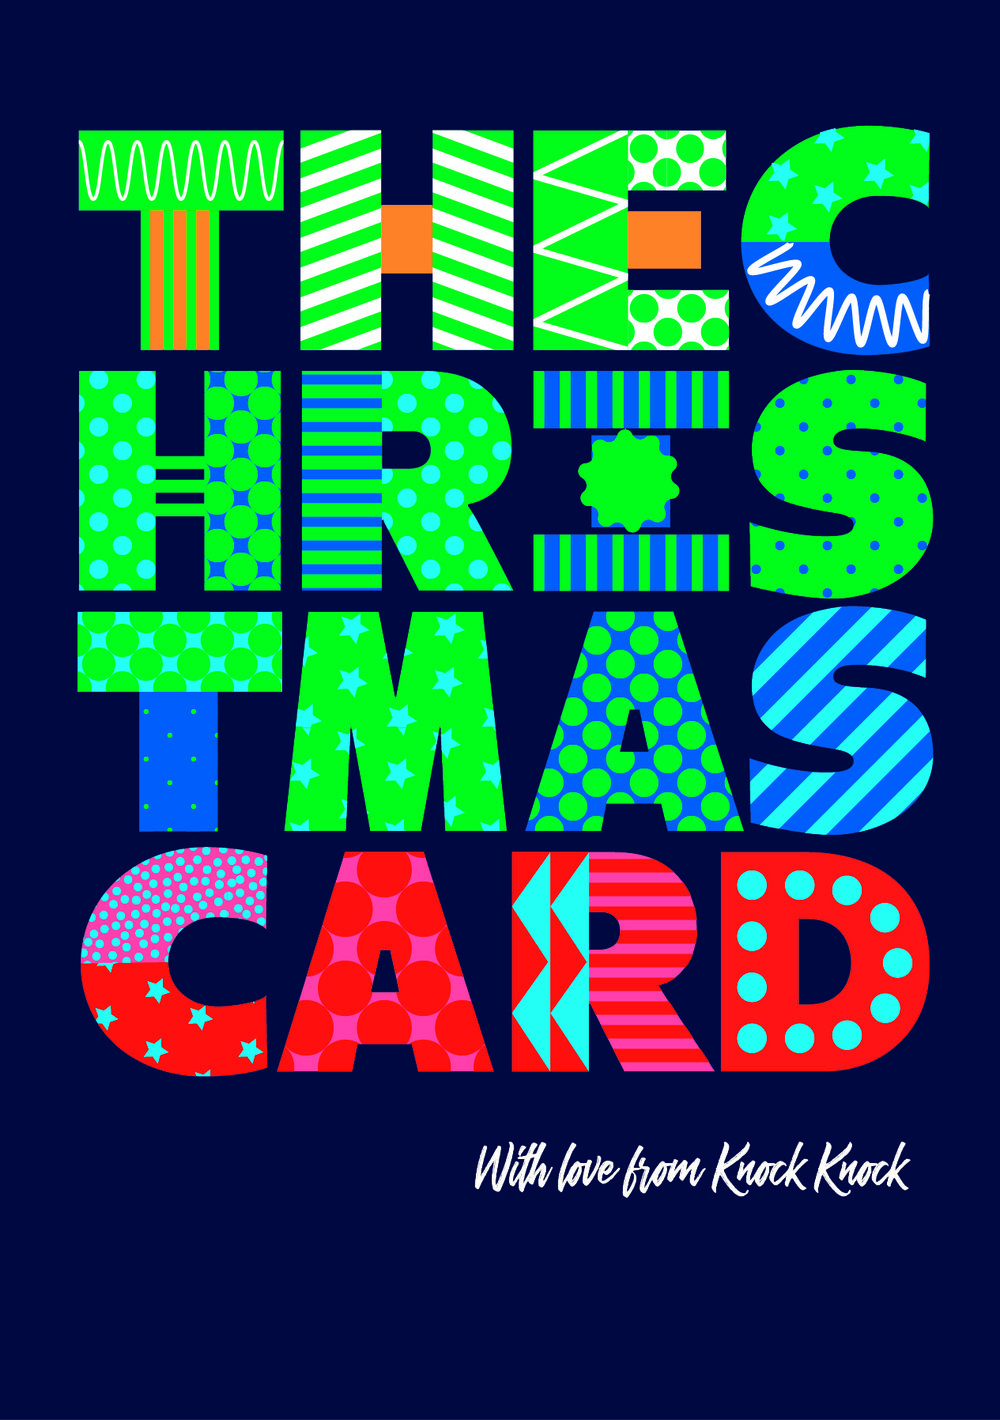 KK_christmas_card_02-05.jpg